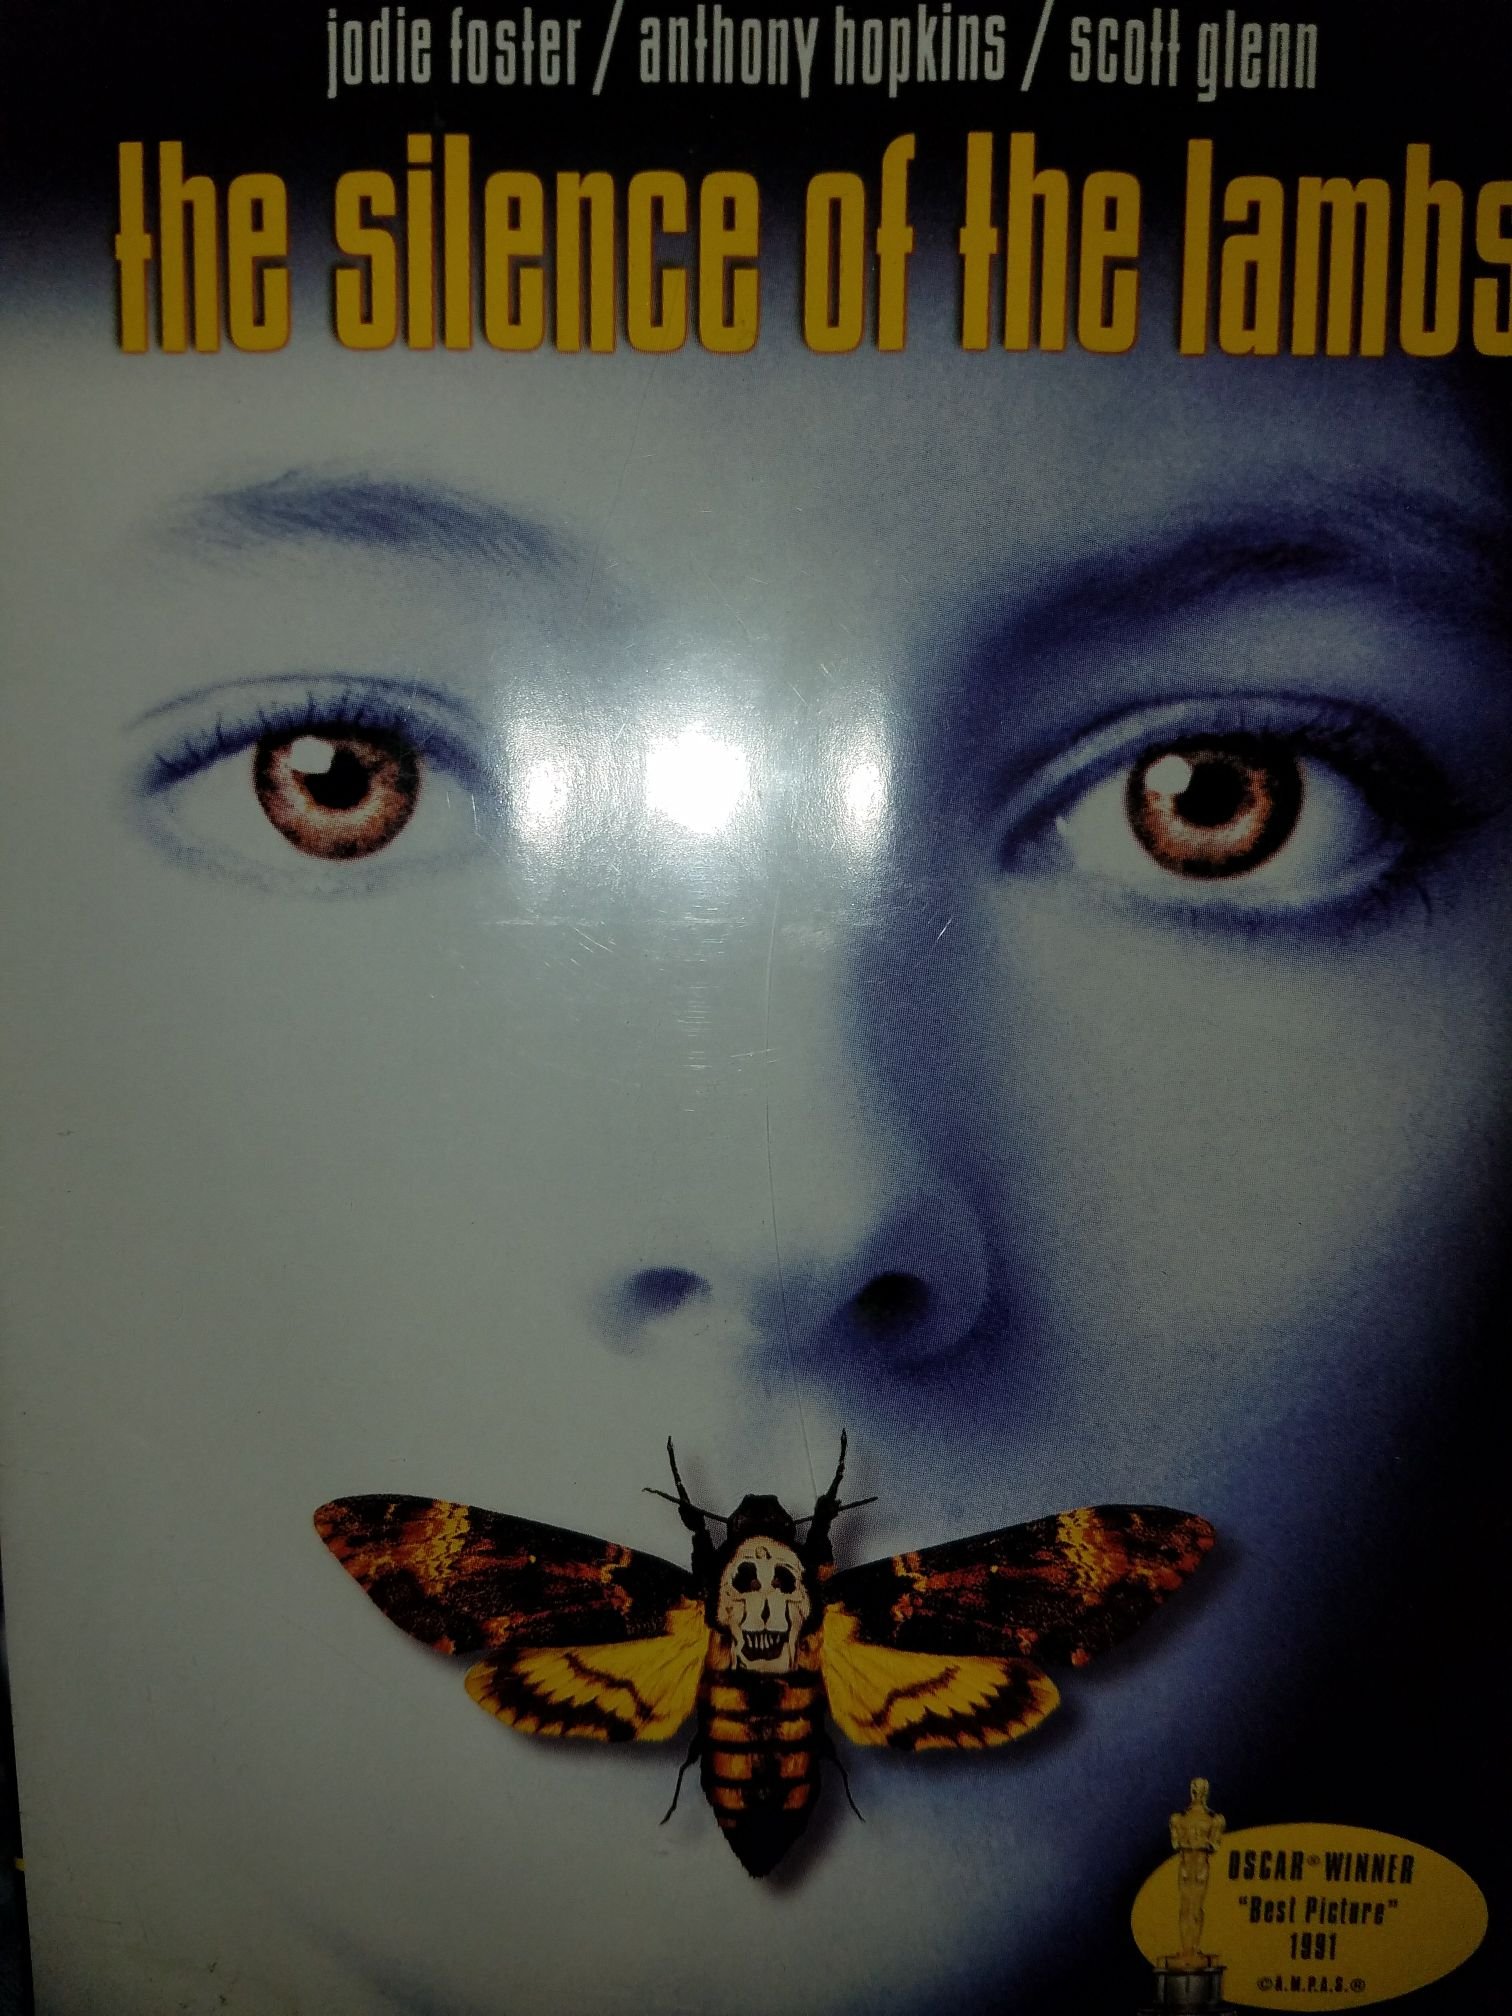 silence of the lambs thesis The silence of the lambs has 384,270 ratings and 4,280 reviews ana said: it rubs the lotion on its skin it does this whenever it is toldthis li.